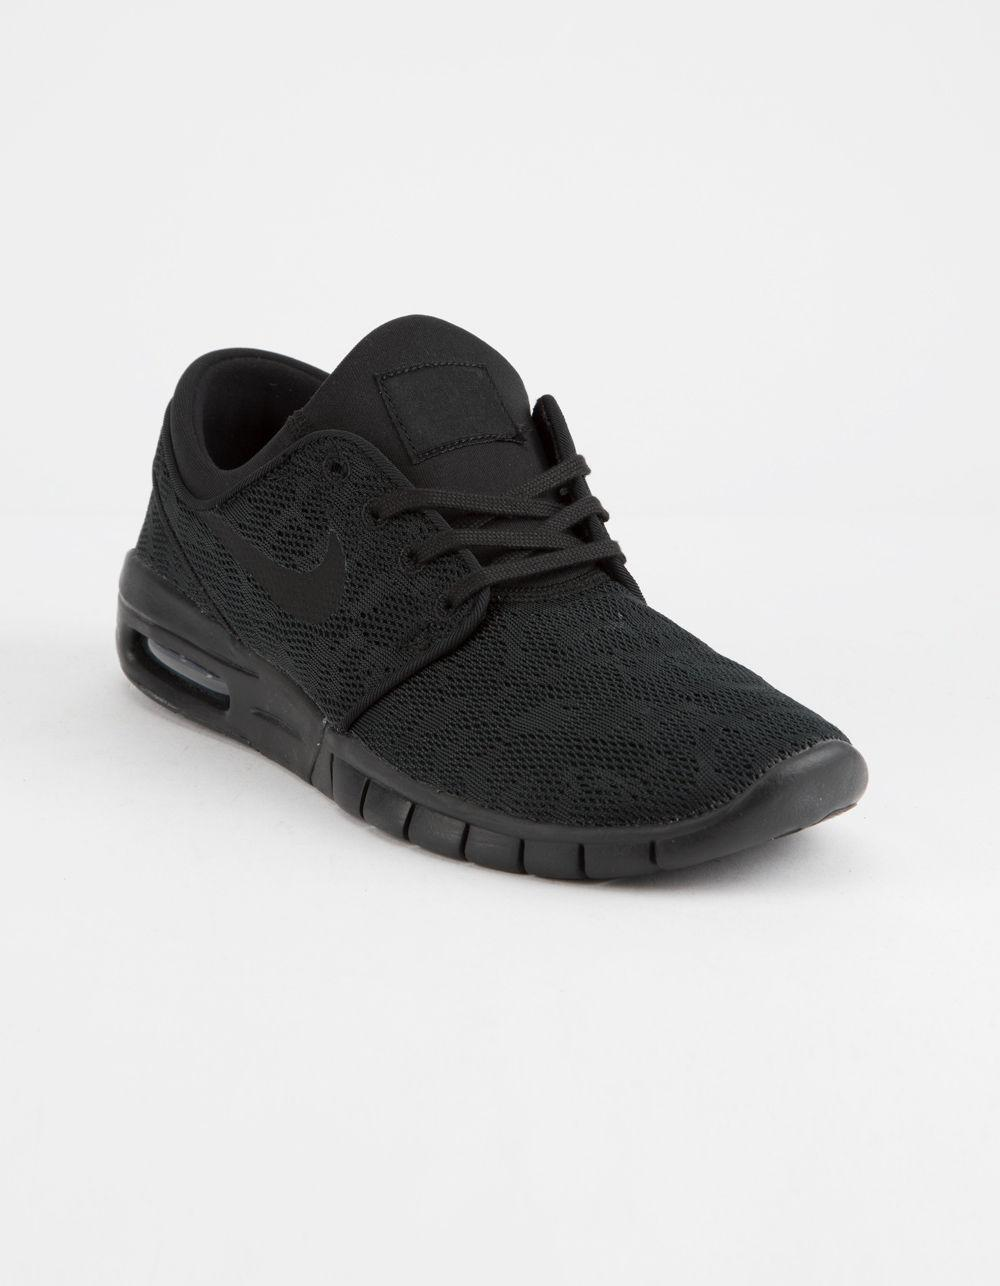 b060b86287b3 Lyst - Nike Stefan Janoski Max Black   Black-anthracite Shoes in Black for  Men